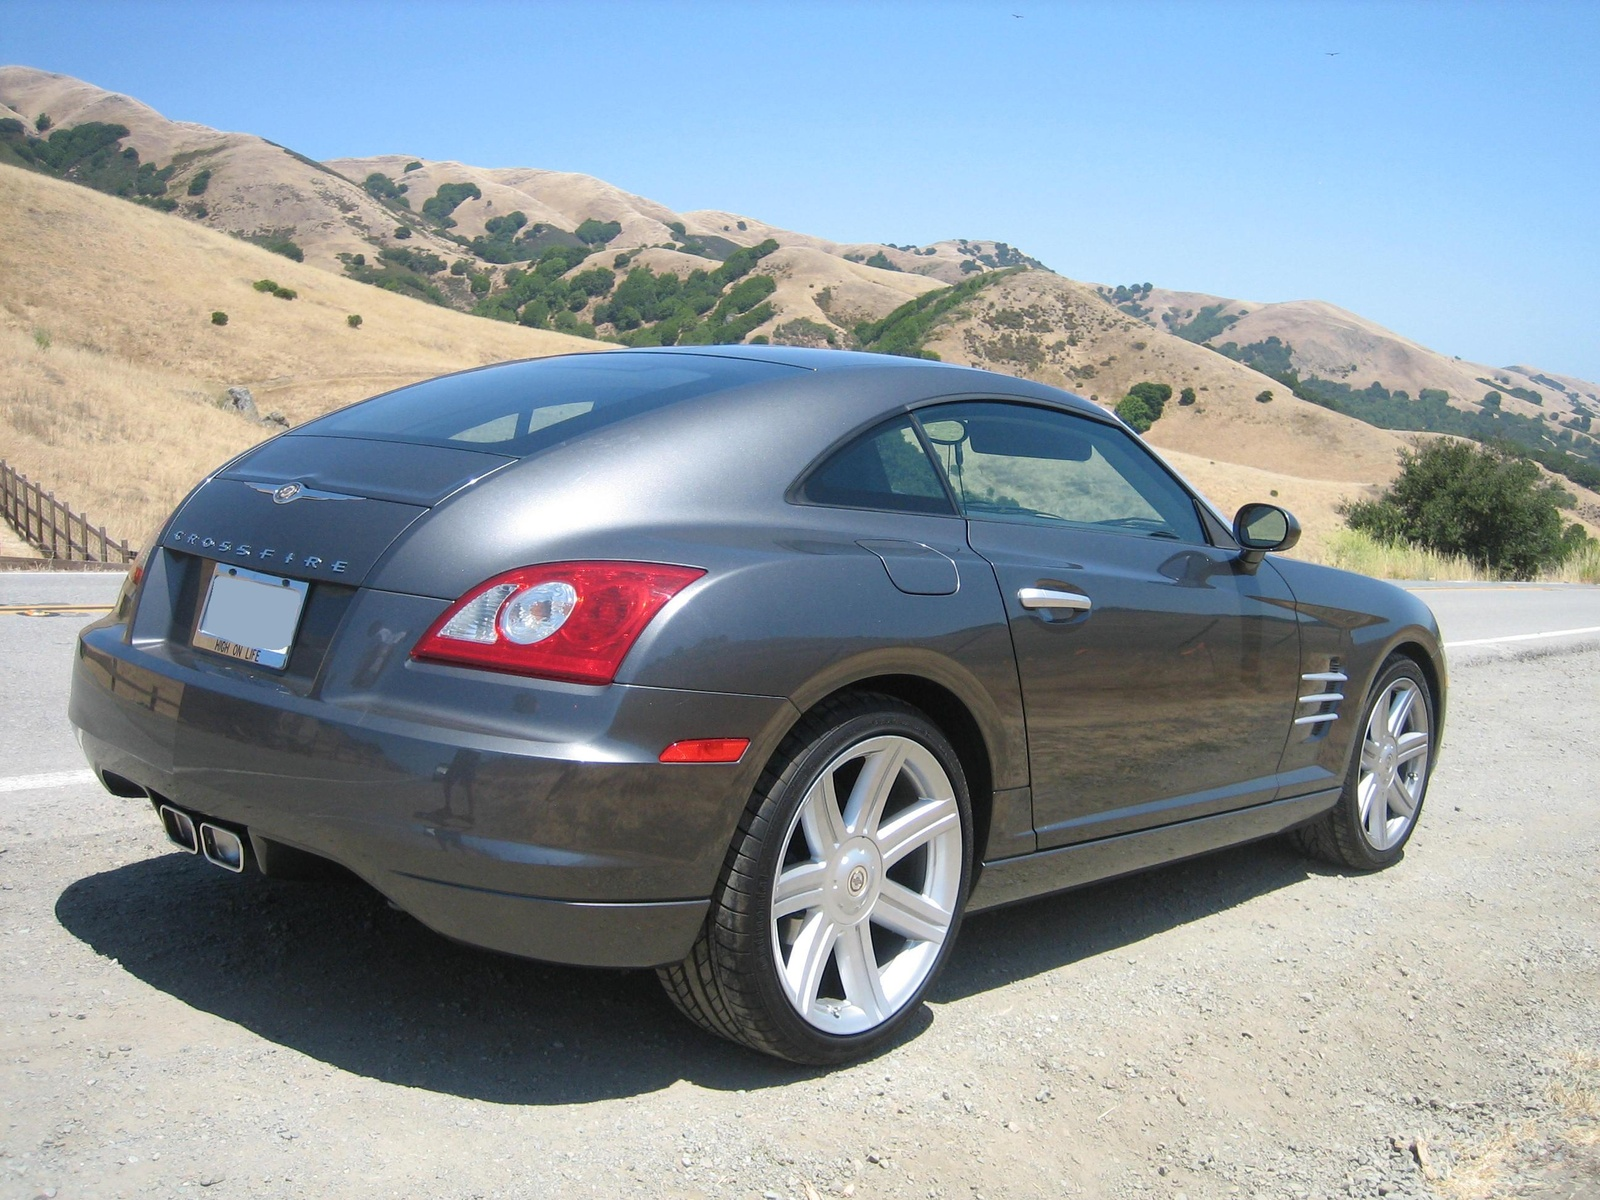 2004 chrysler crossfire pictures cargurus. Black Bedroom Furniture Sets. Home Design Ideas